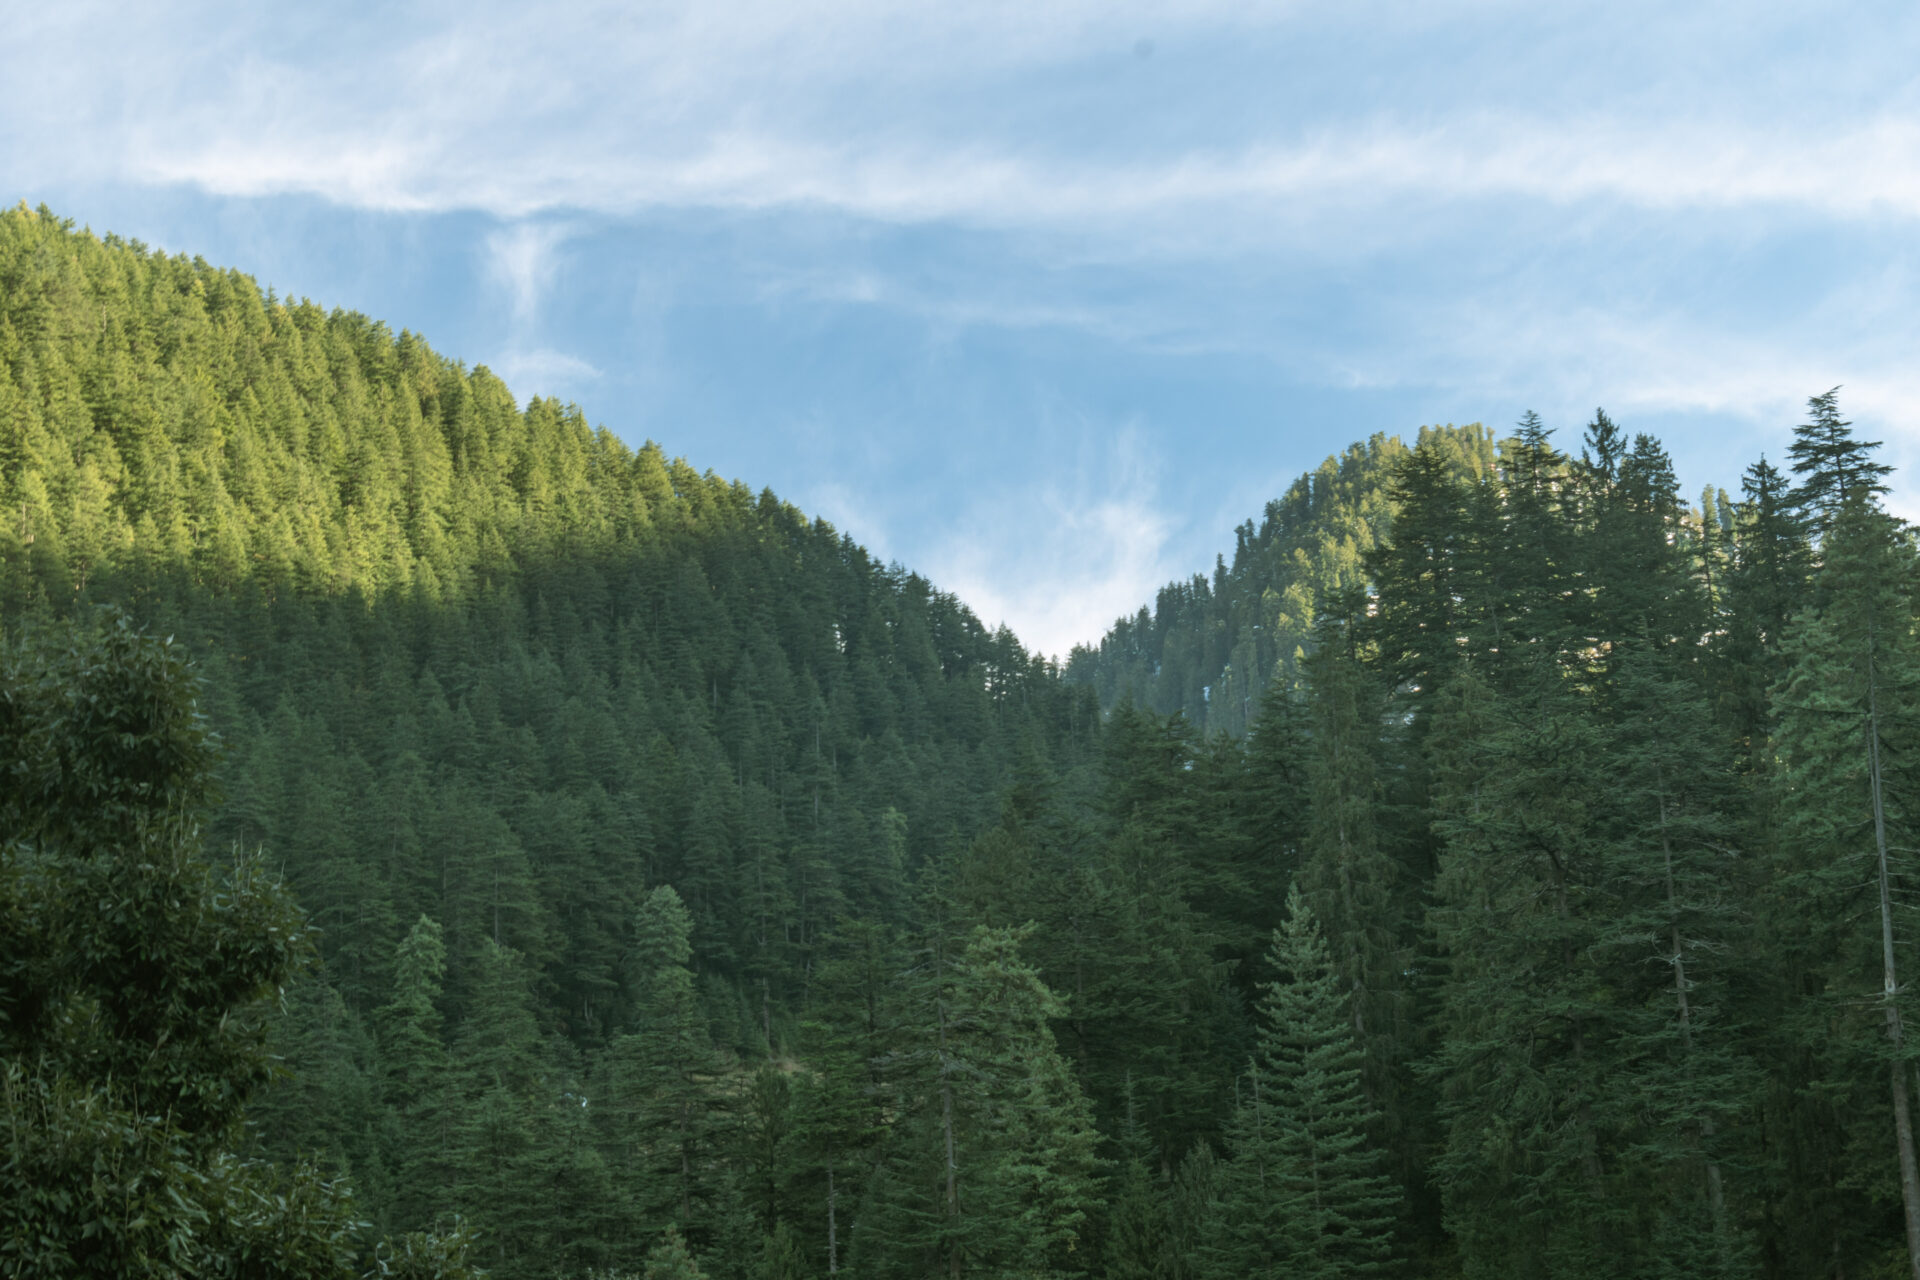 Facing the tall trees of the Jibhi